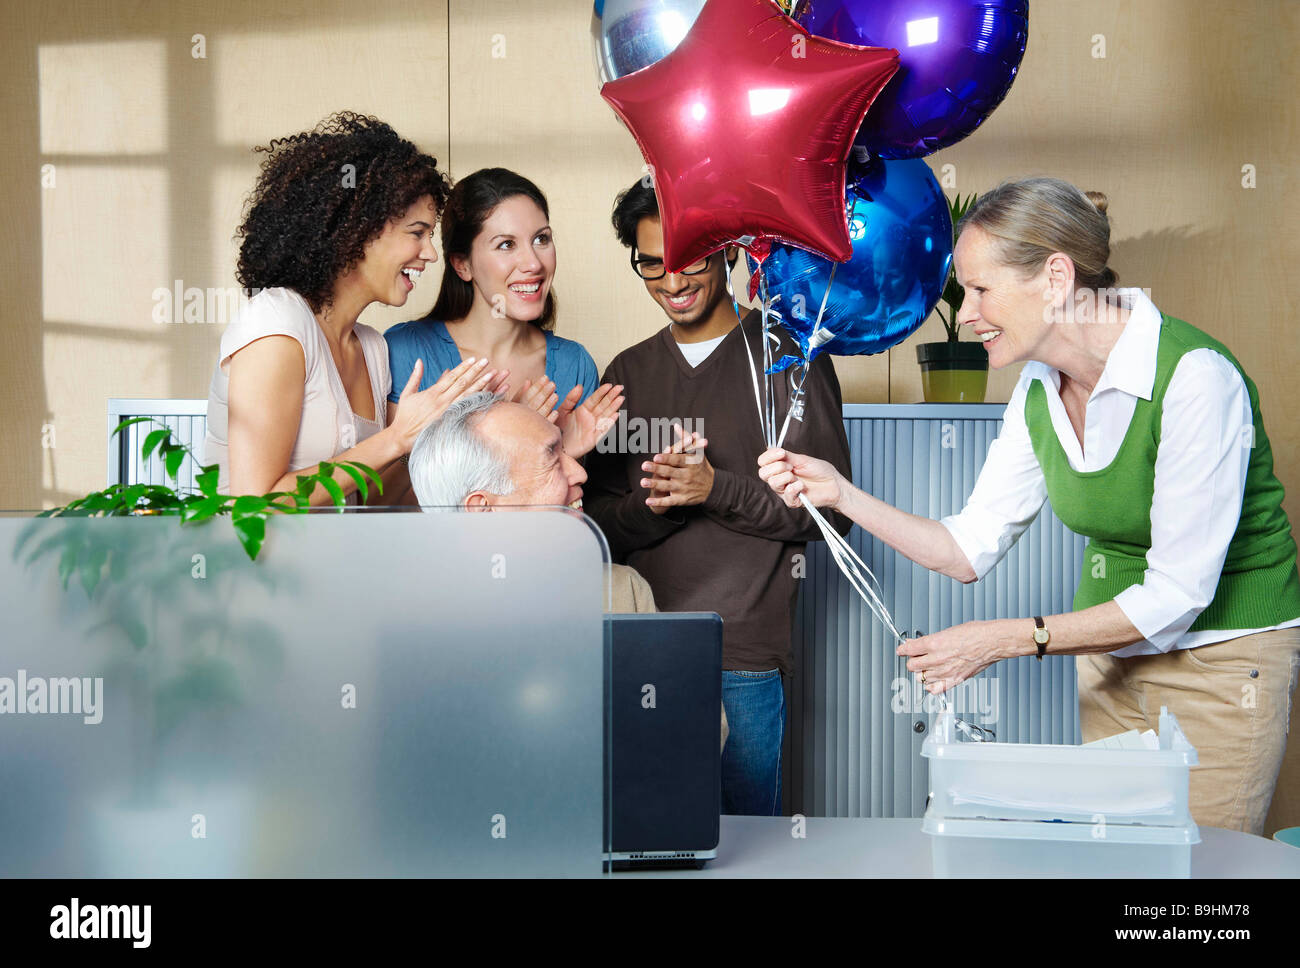 Group of people celebrating co-worker - Stock Image